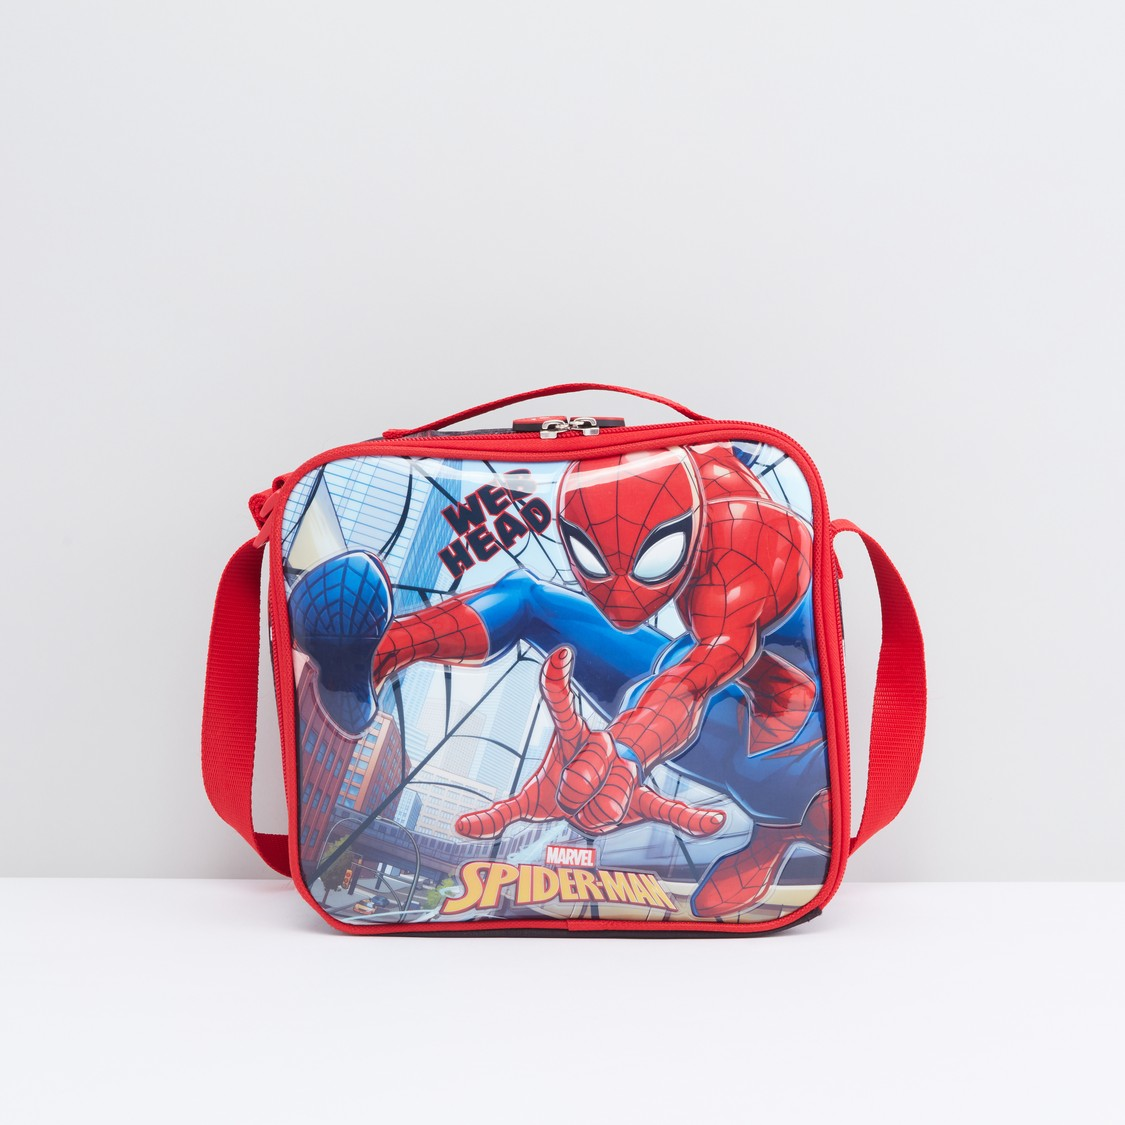 Spider-Man Printed Lunch Bag